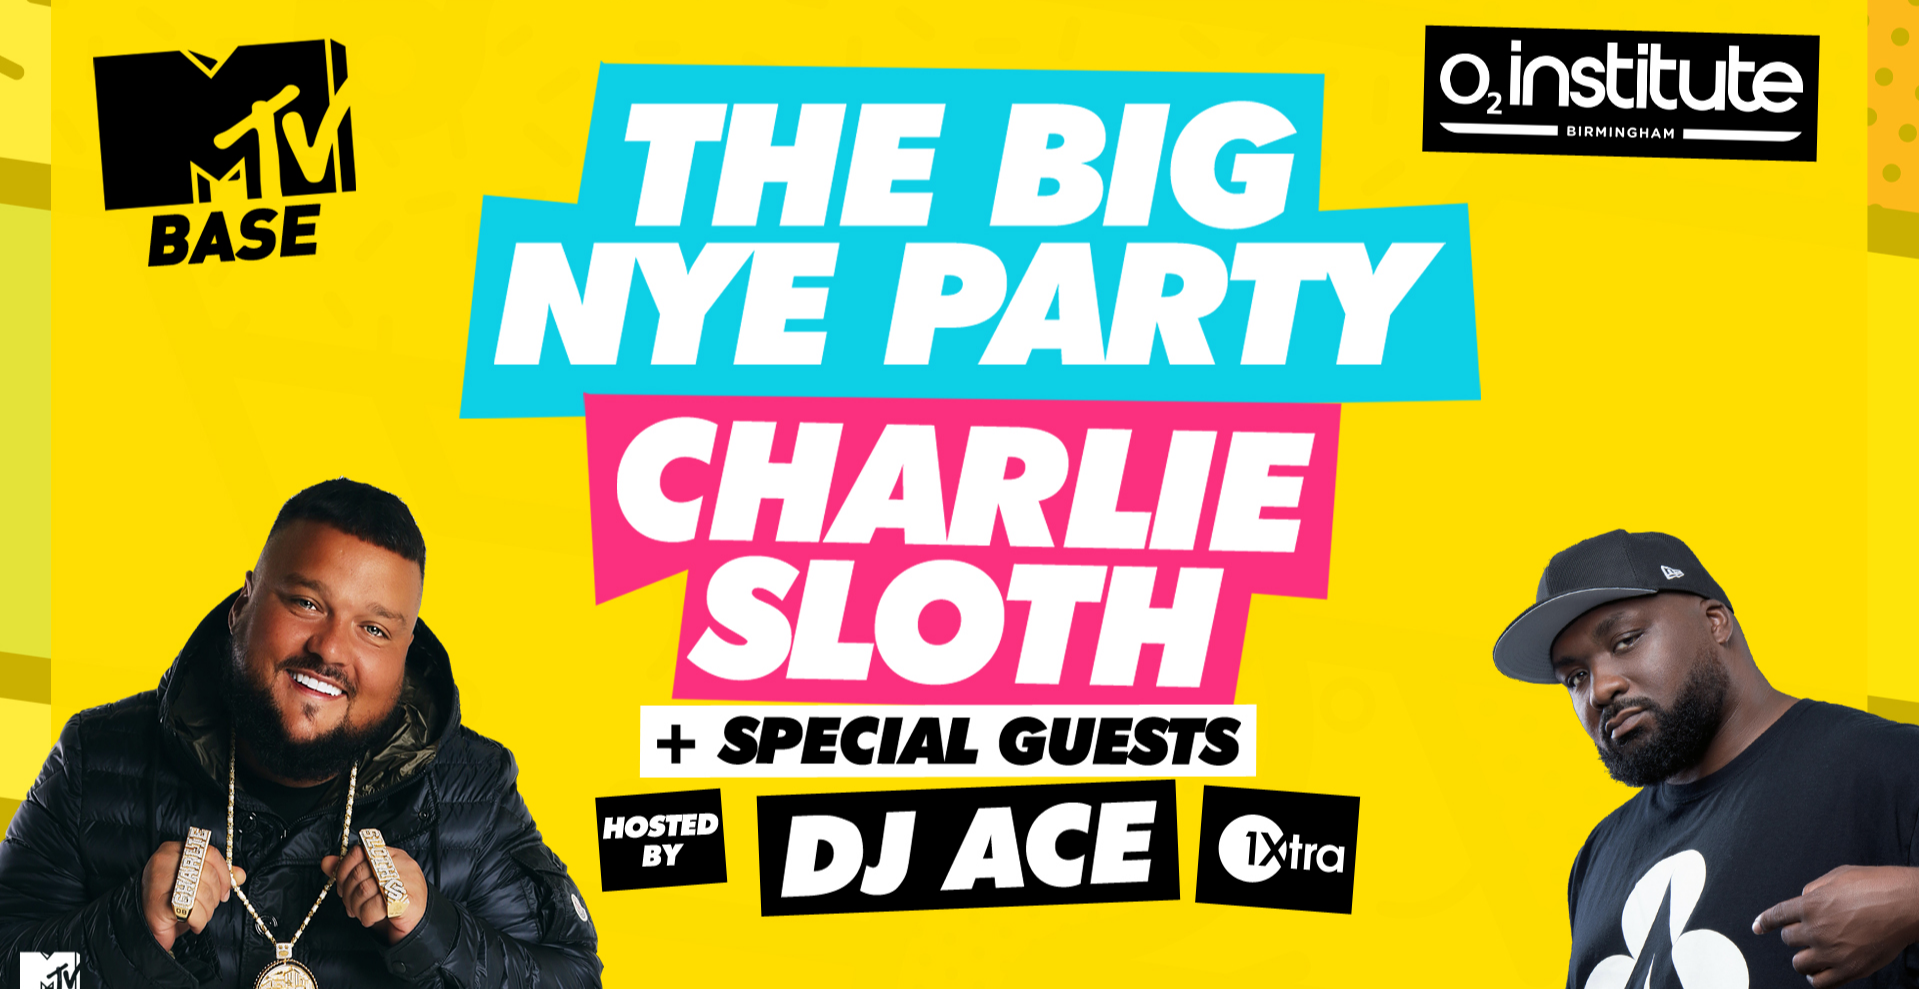 MTV BASE - The Big NYE Birmingham with Charlie Sloth & Guests